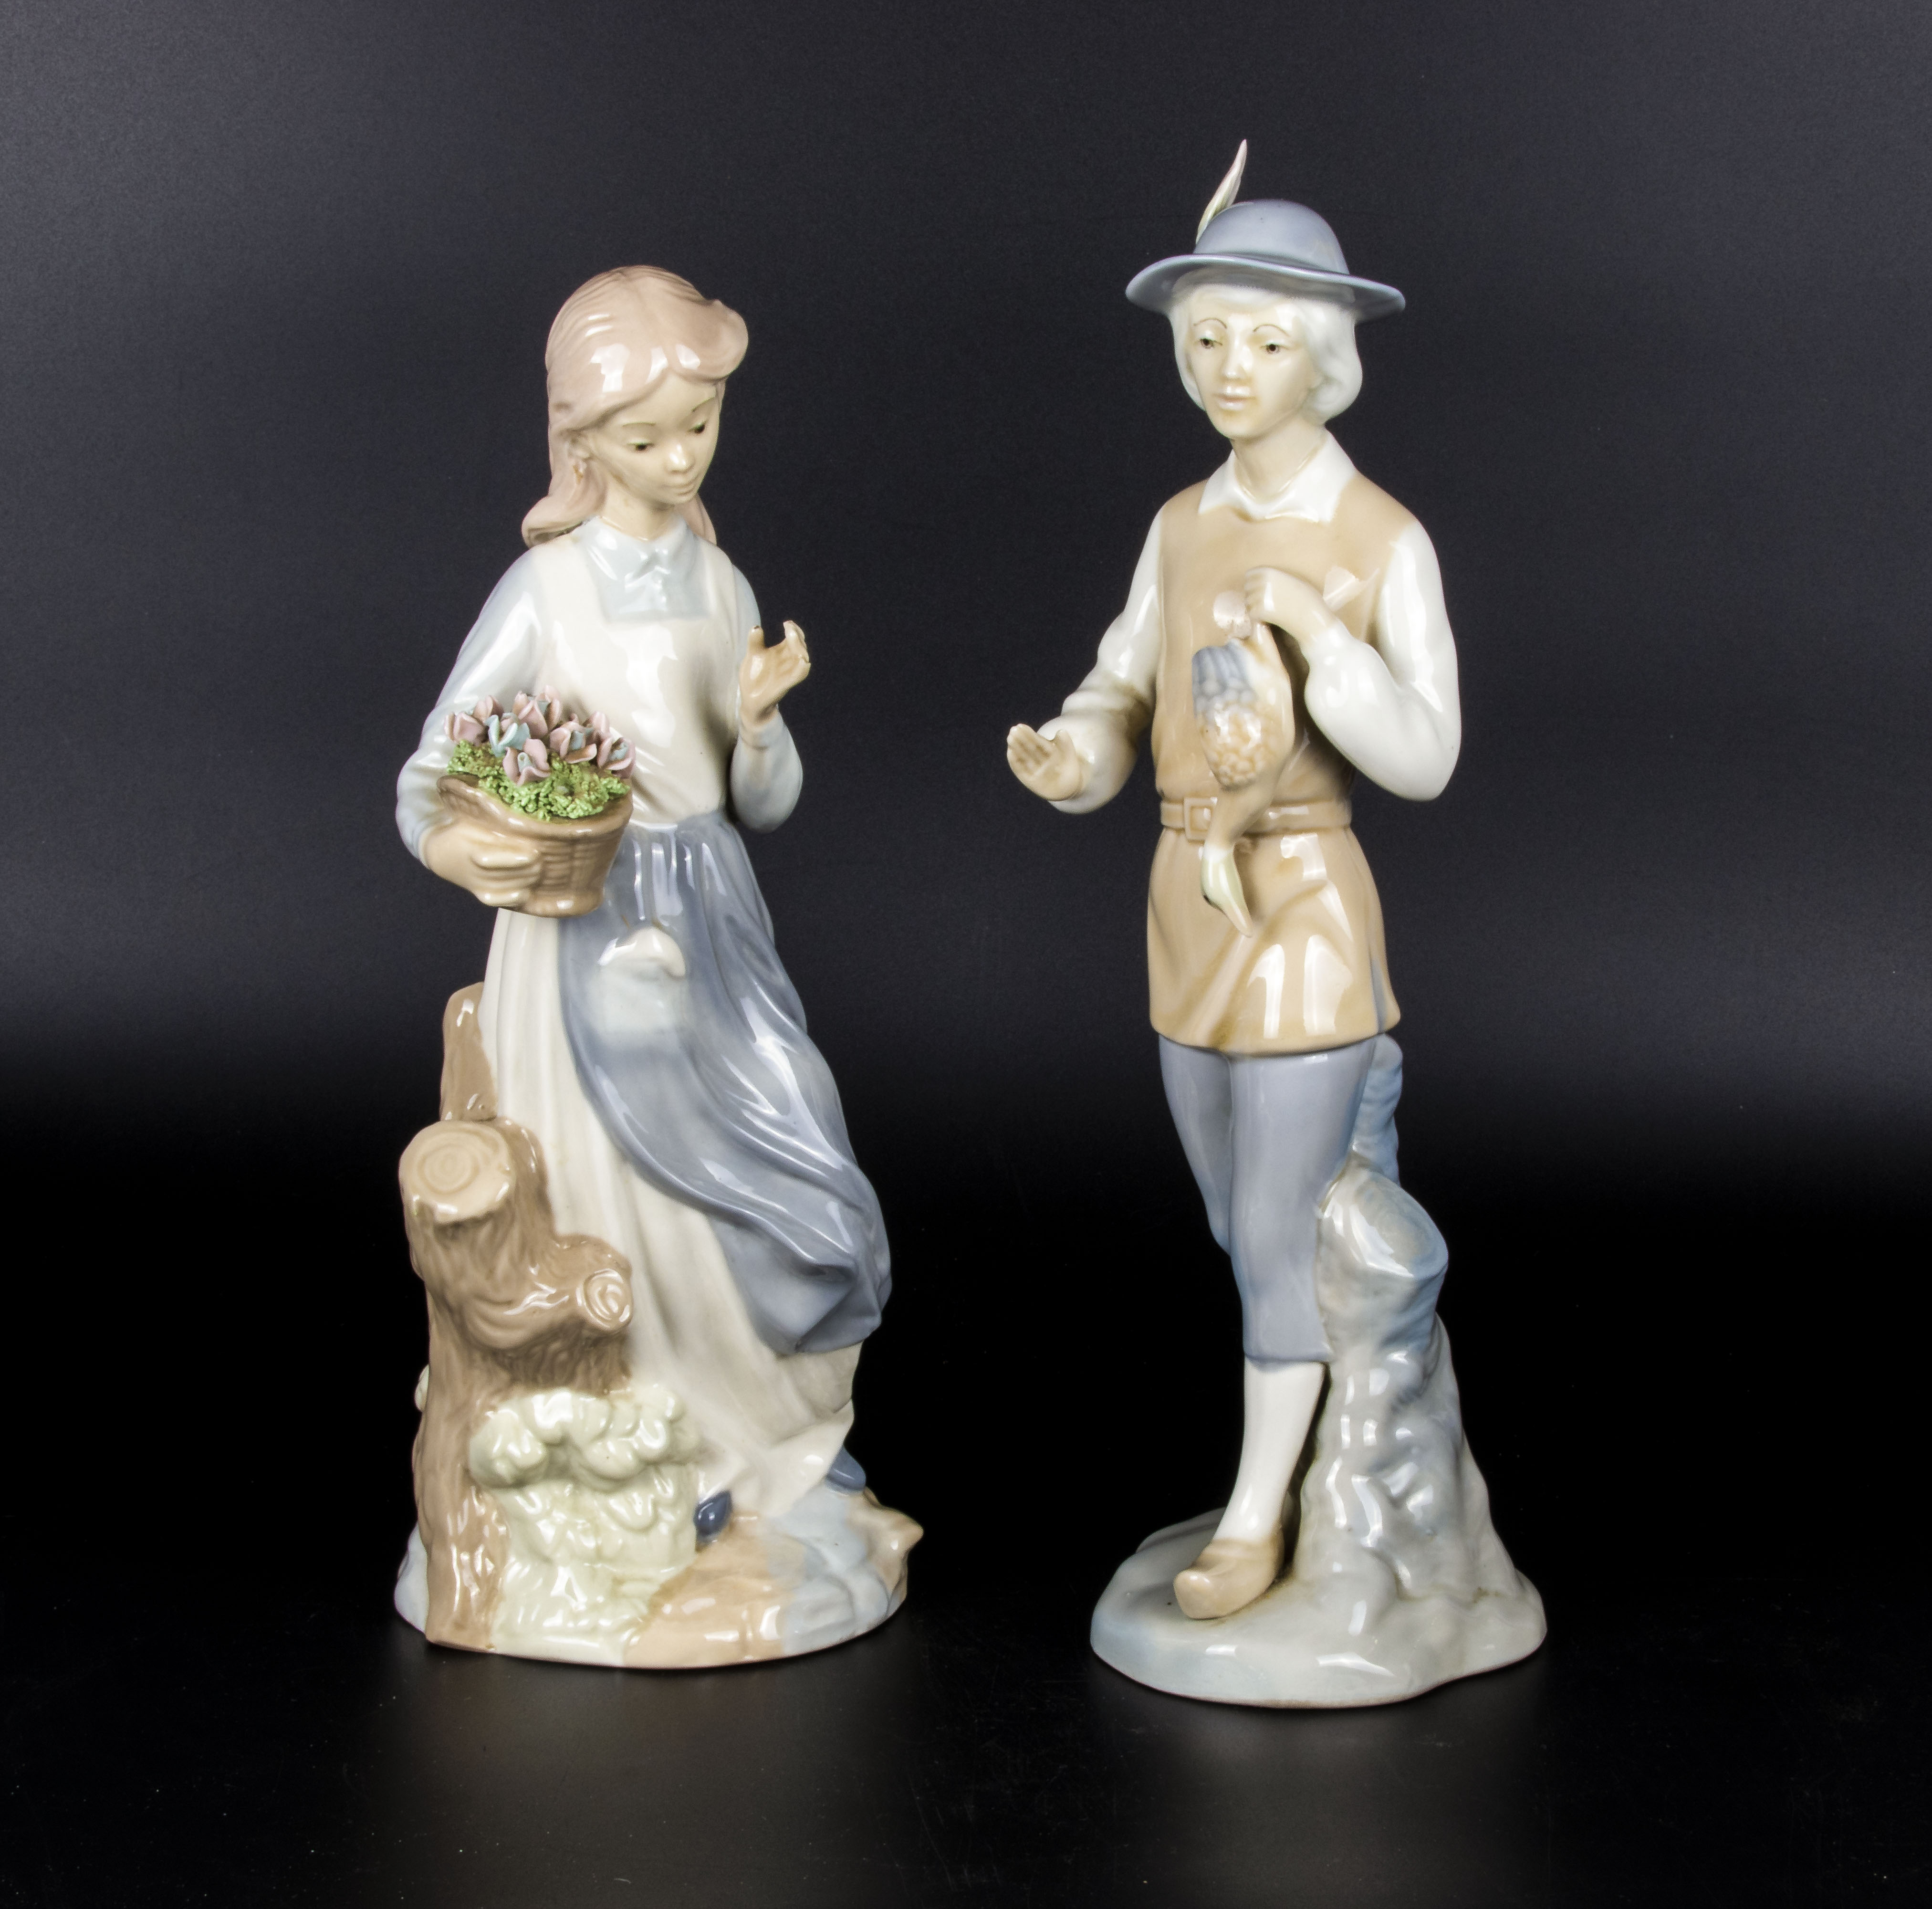 Lot 2 - A pair of Lladro figures